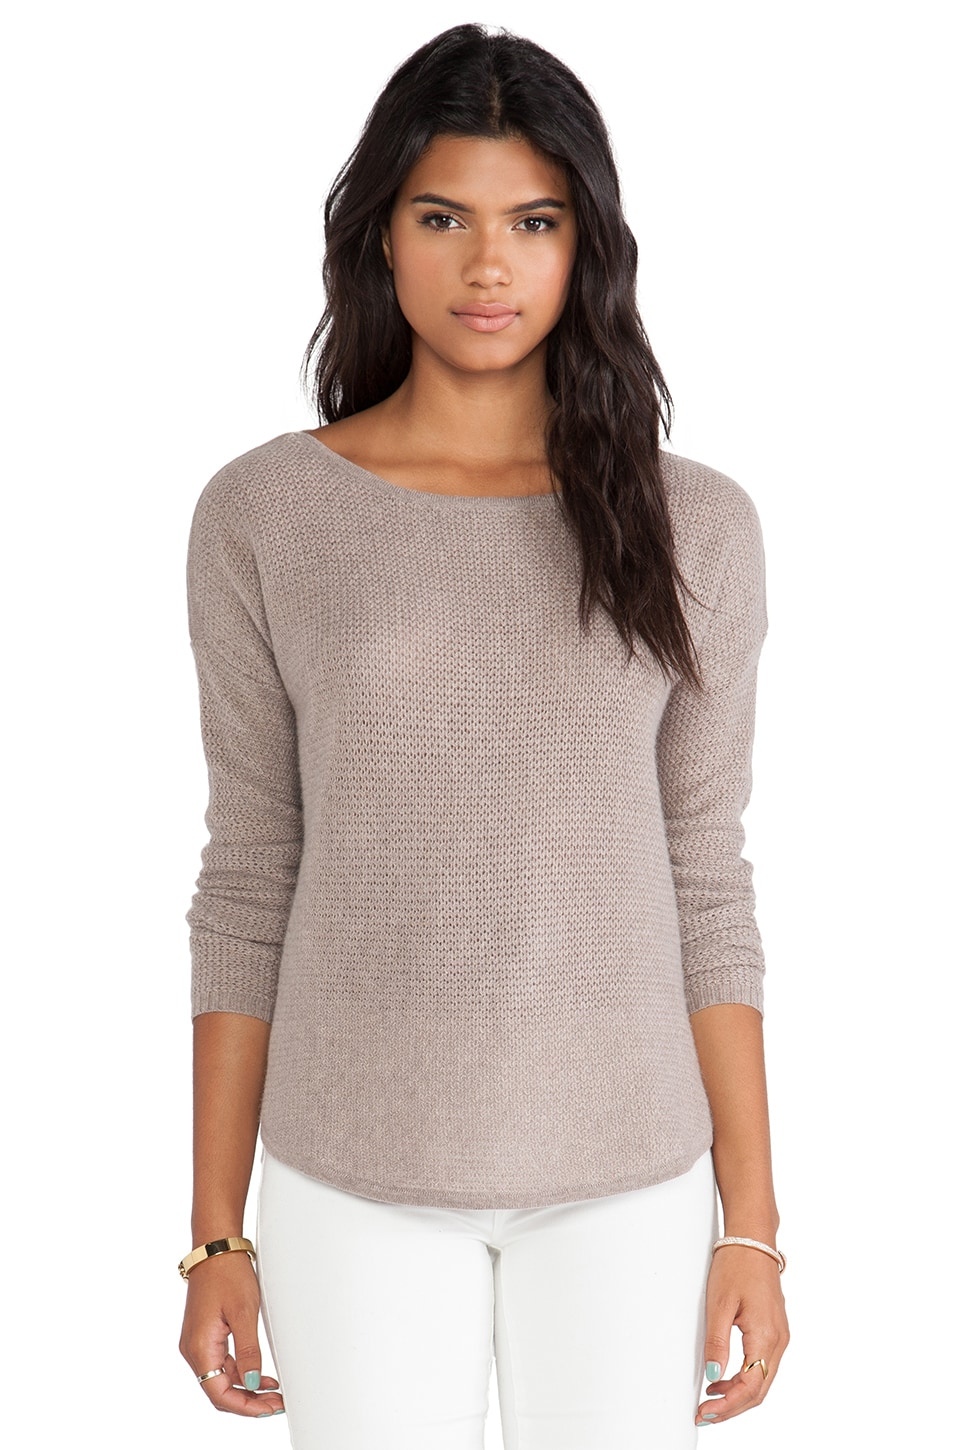 White + Warren Rickrack Slash Neck Sweater in Mocha Heather